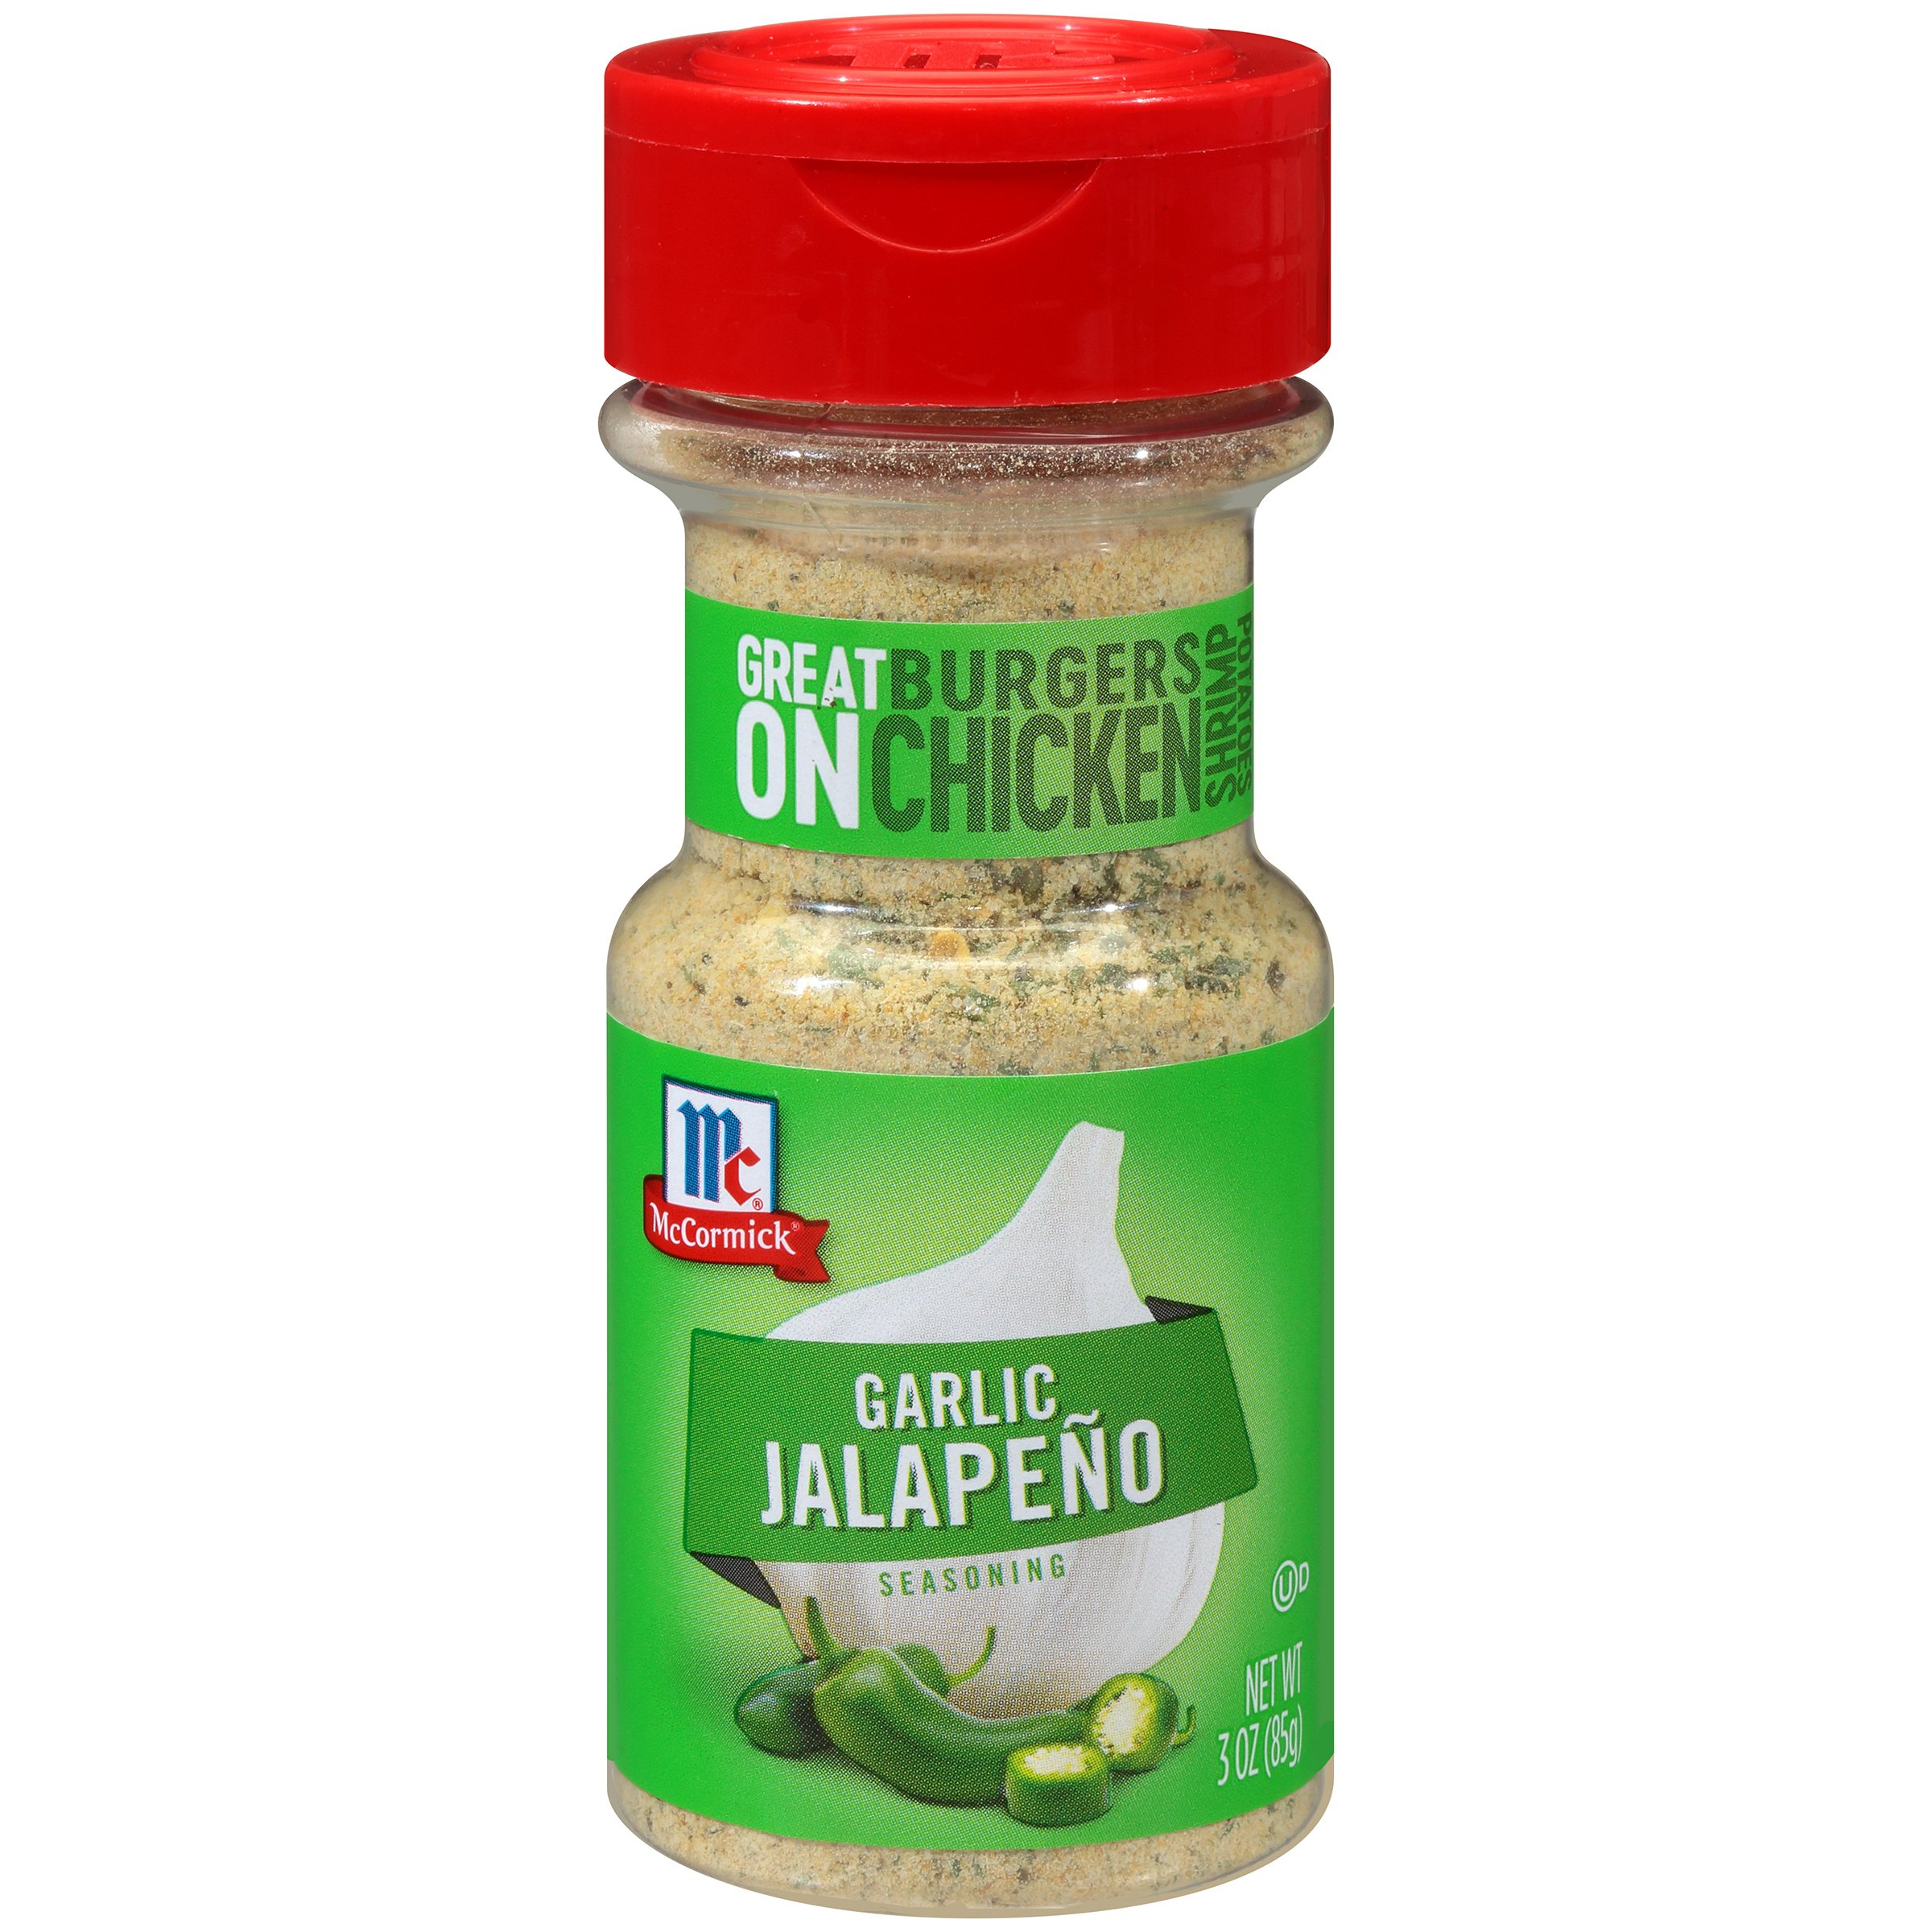 McCormick Garlic Jalapeno Seasoning, 3 oz (Pack of 72)